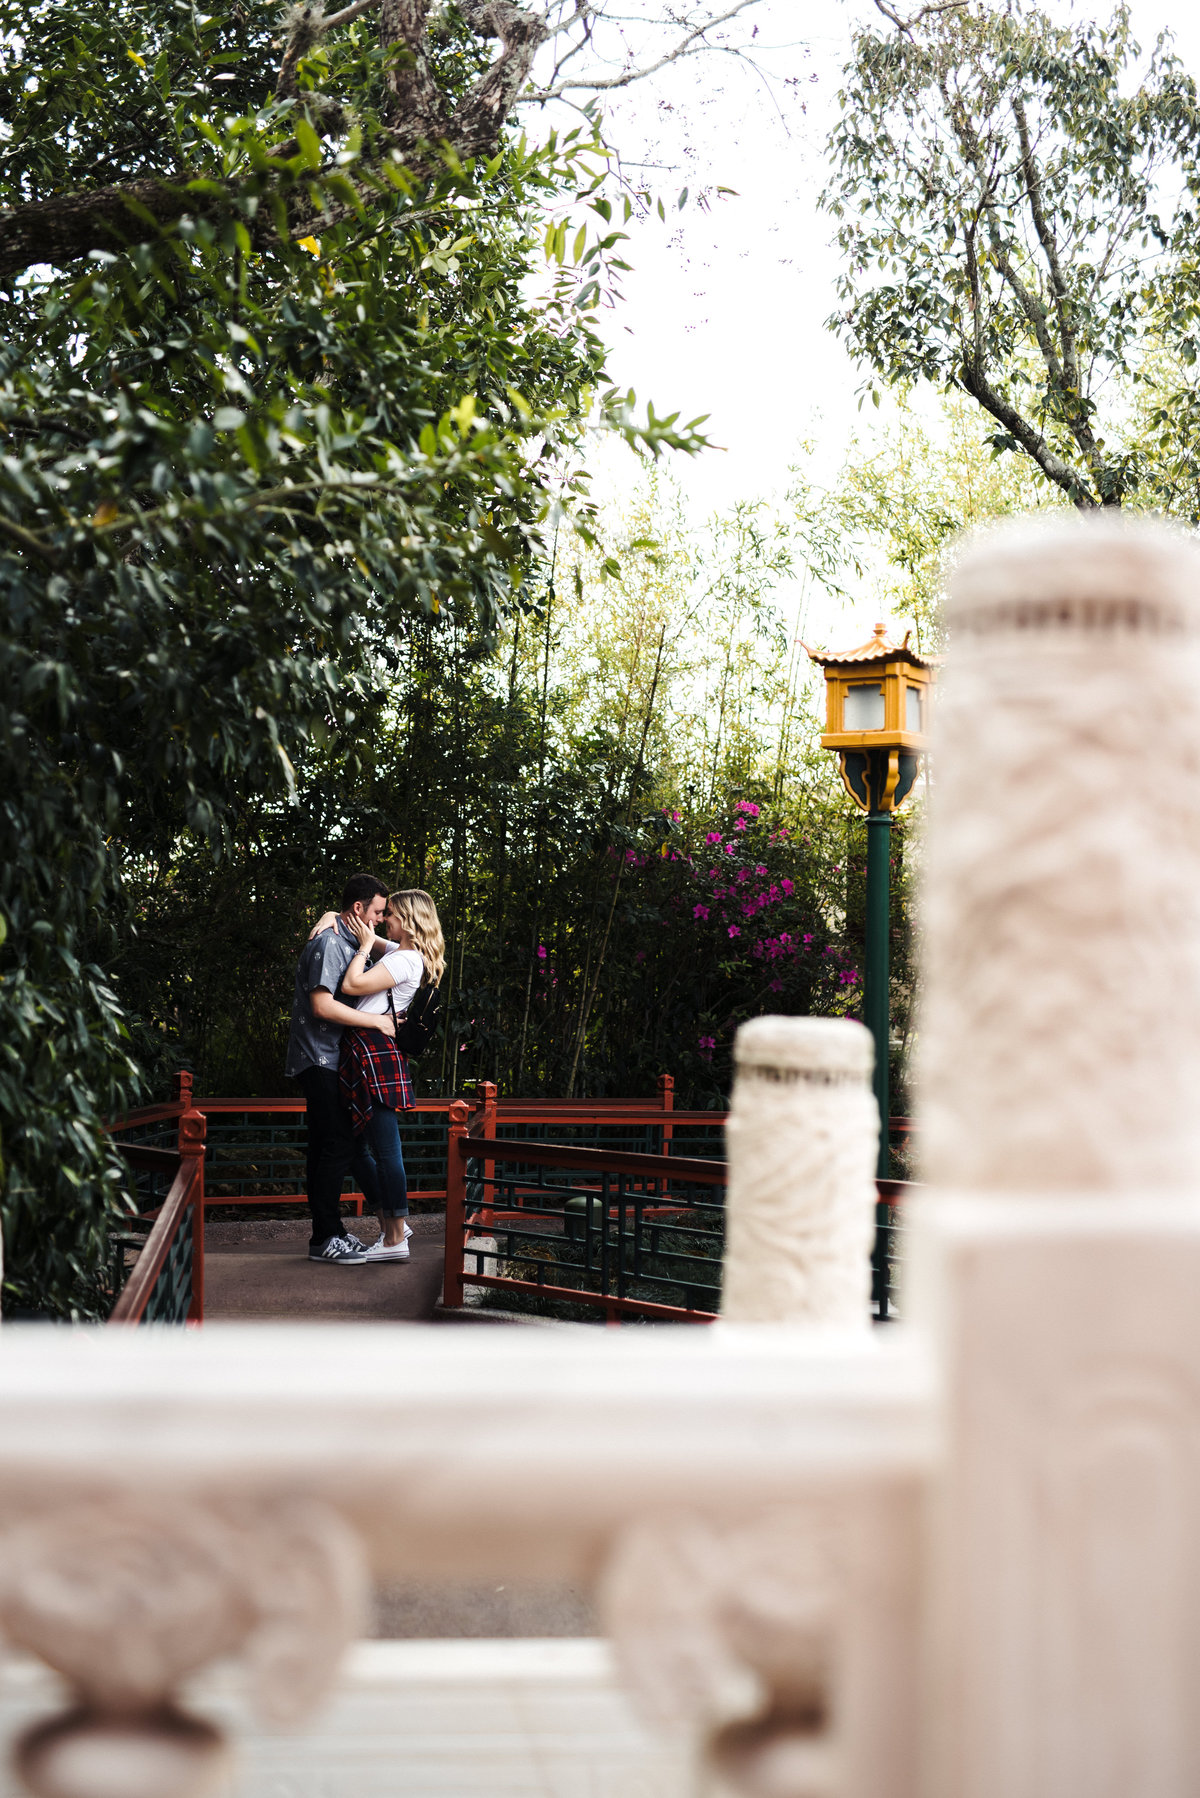 Ally & Brett's Disney Engagement Session (143 of 243)